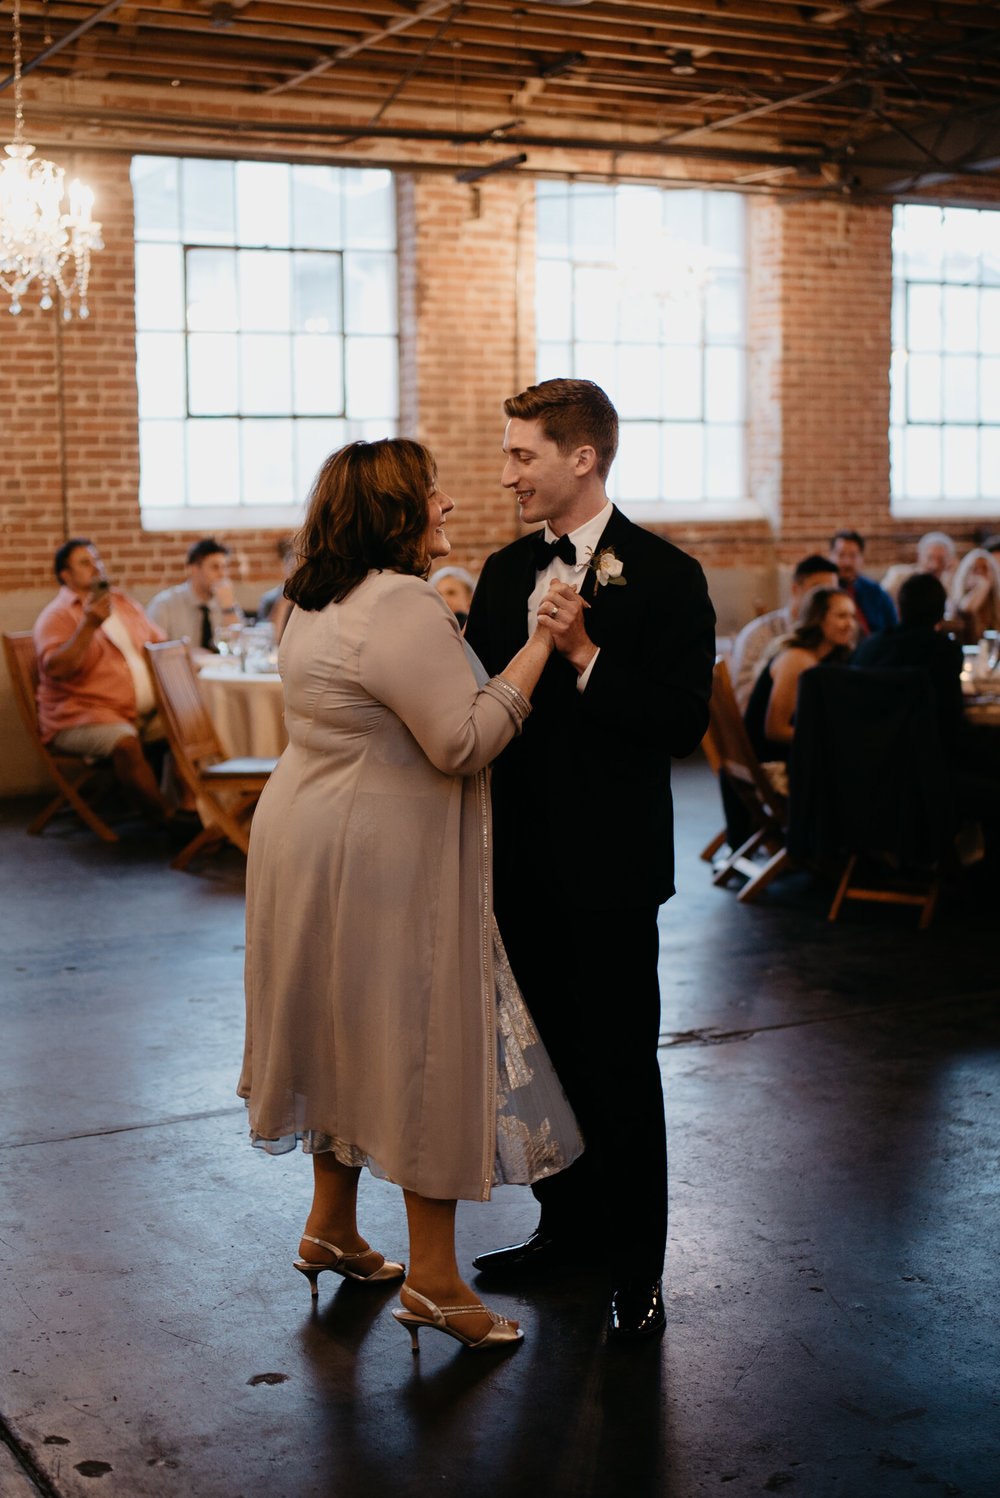 Denver city wedding at Moss. Mother and son dance. Colorado wedding photographer.